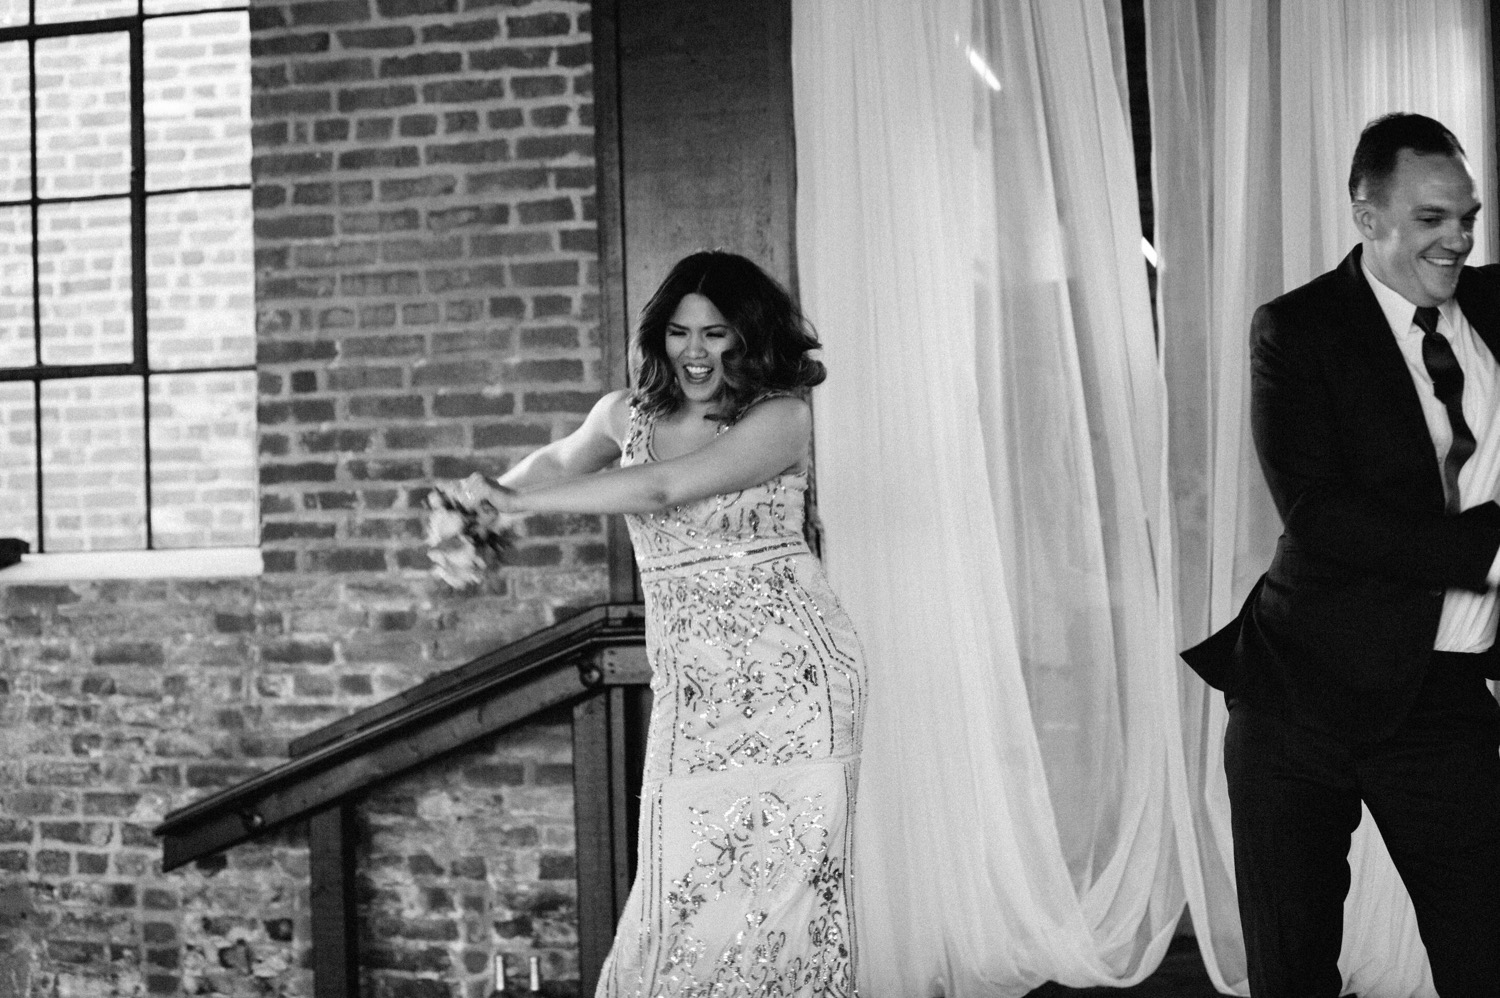 084_Rebekah+Will_Slideshow_384_gianvaldiviaphoto_gvpcouples_silk_virginia_Wedding_mill_old_innattheoldsilkmill_fredericksburgwedding_virginiaweddingphotographer.jpg